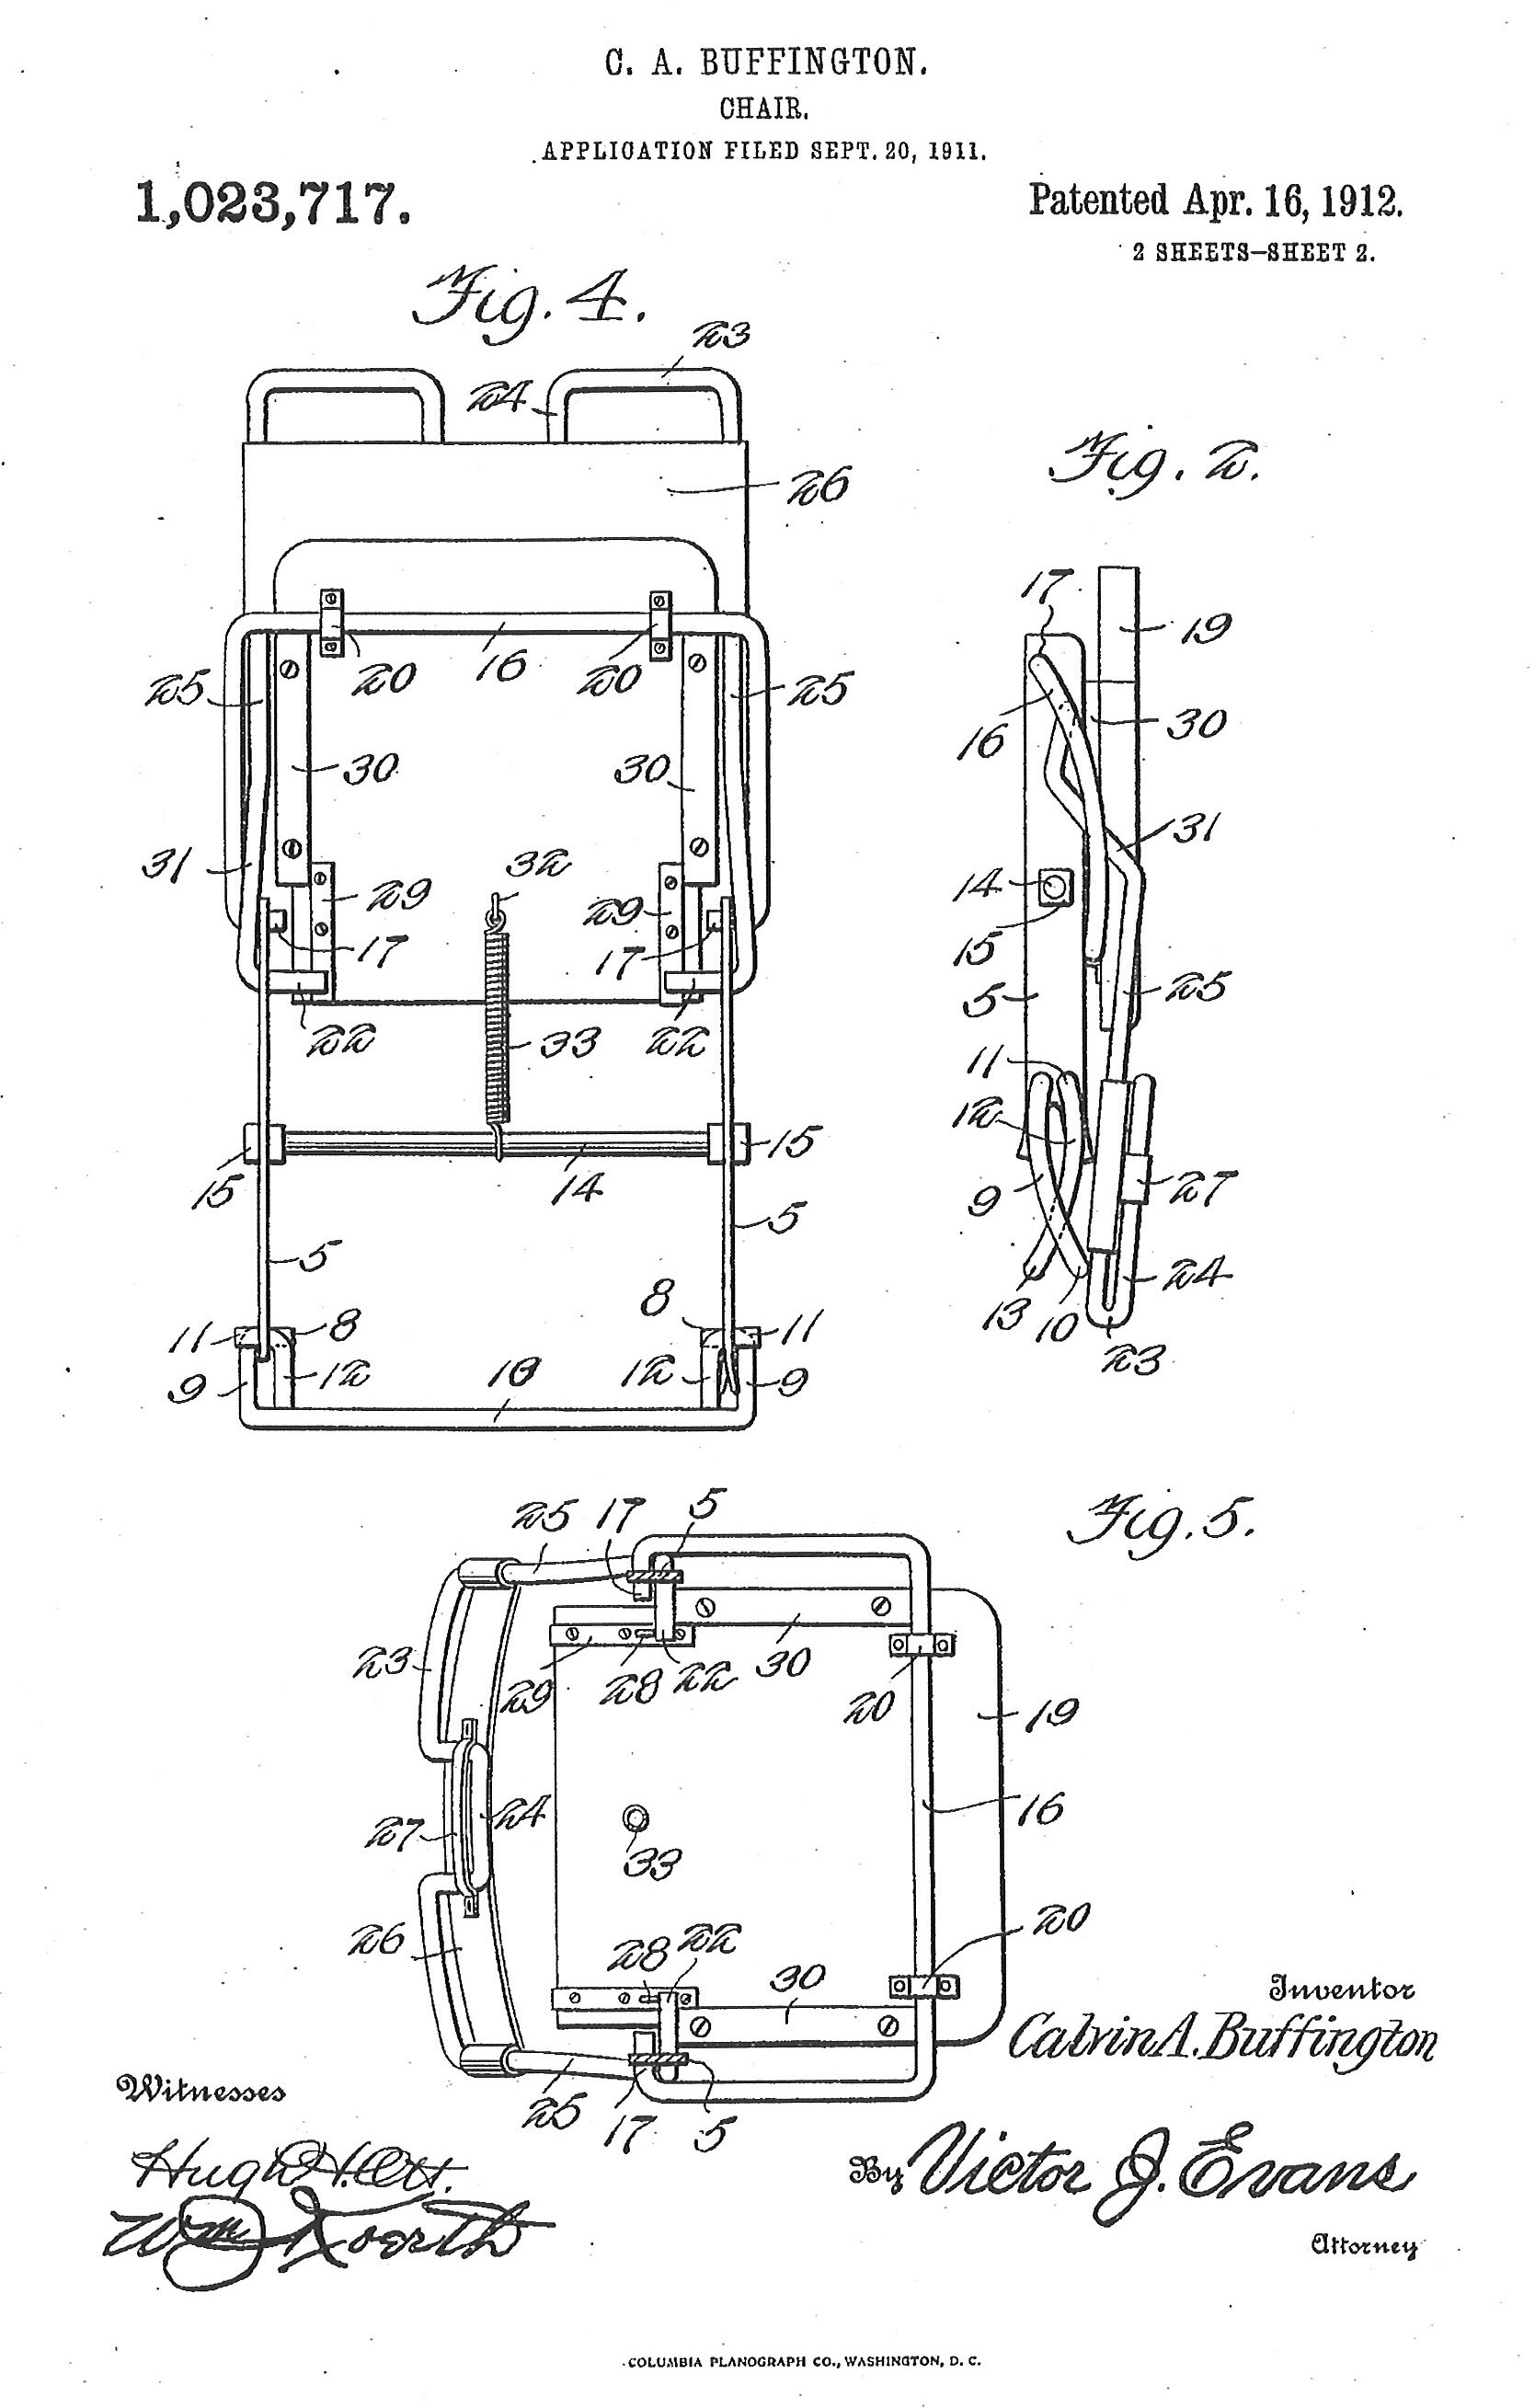 chair design patent white lounge canada from museum storagec a buffington and co automobile